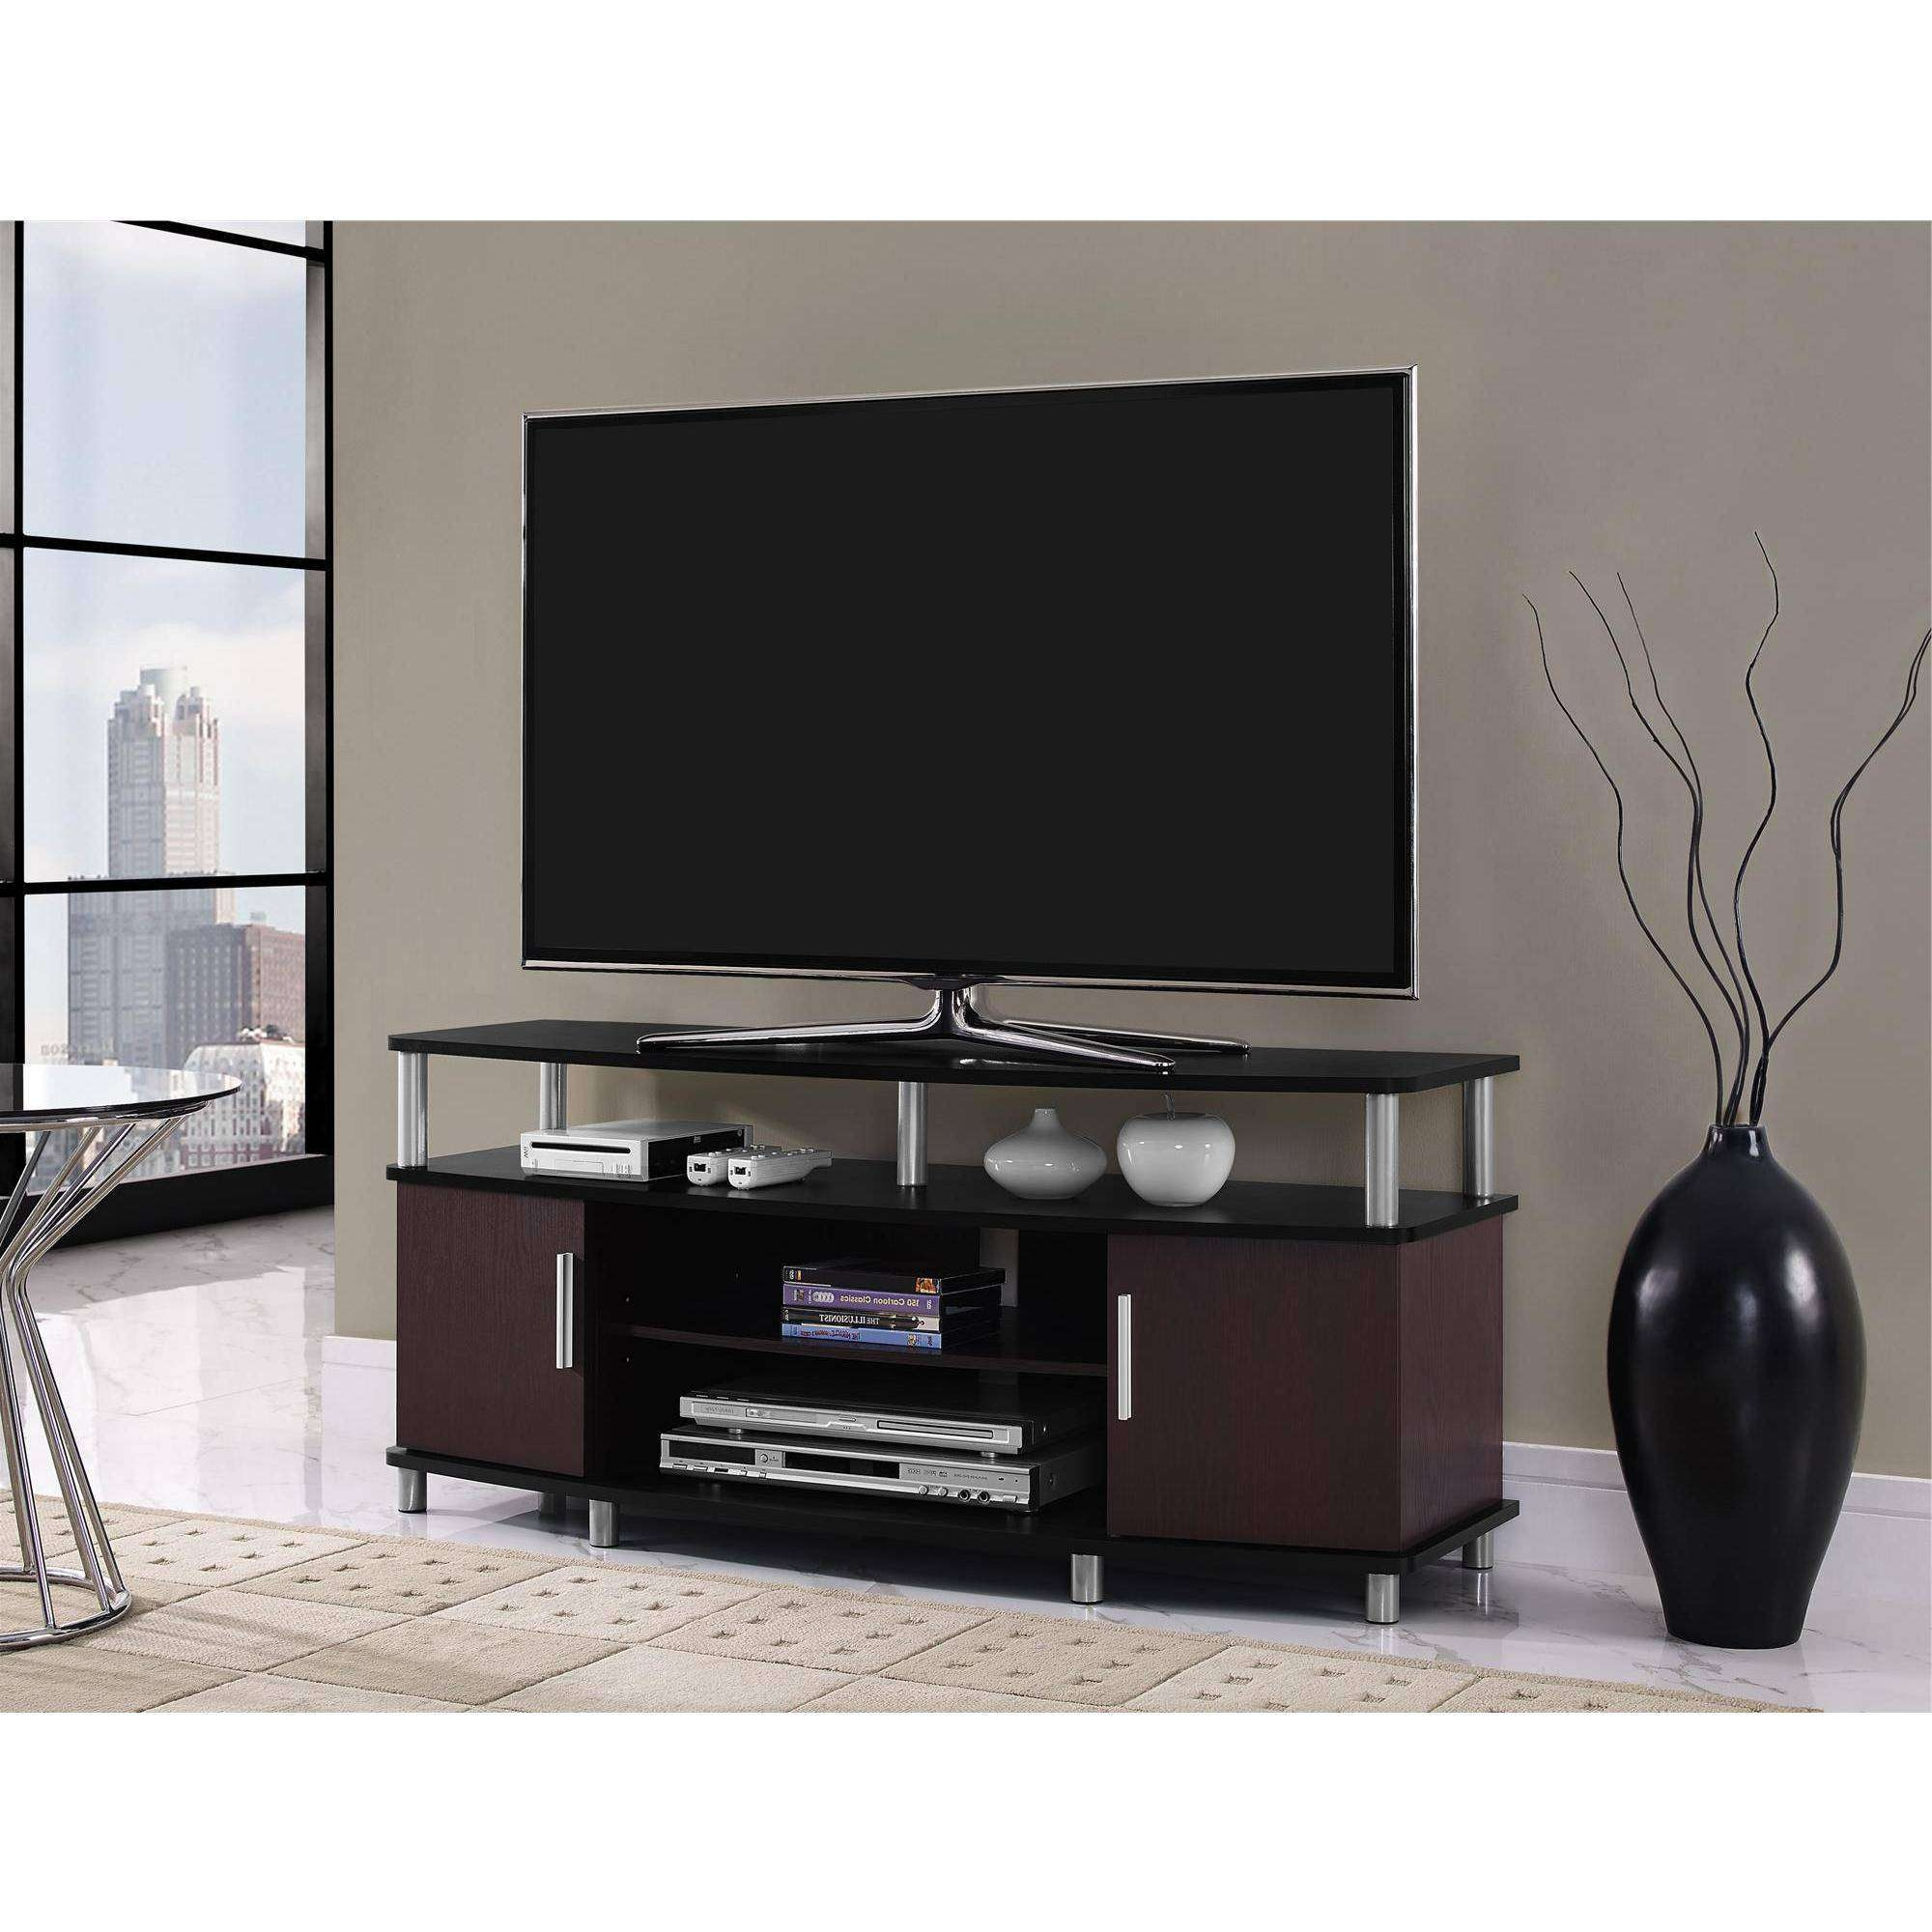 Tv Stands & Entertainment Centers – Walmart Inside Black Tv Stands With Drawers (View 4 of 15)